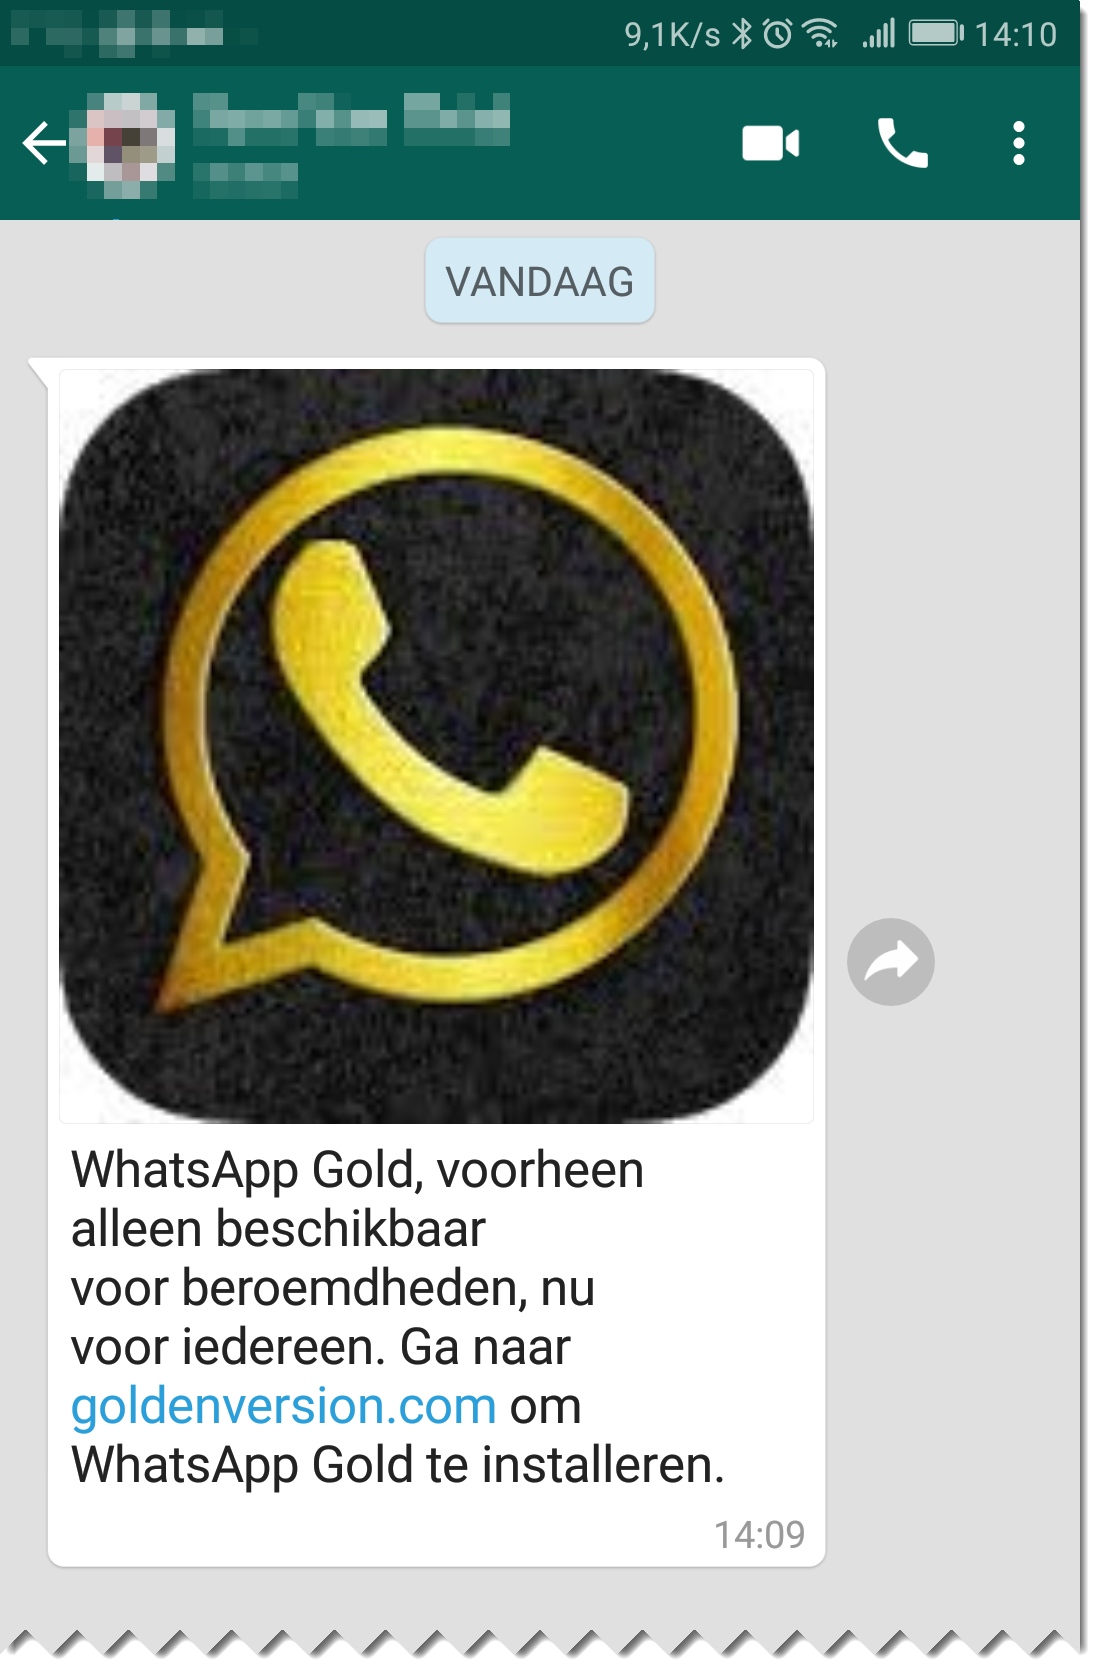 De WhatsApp Gold scam